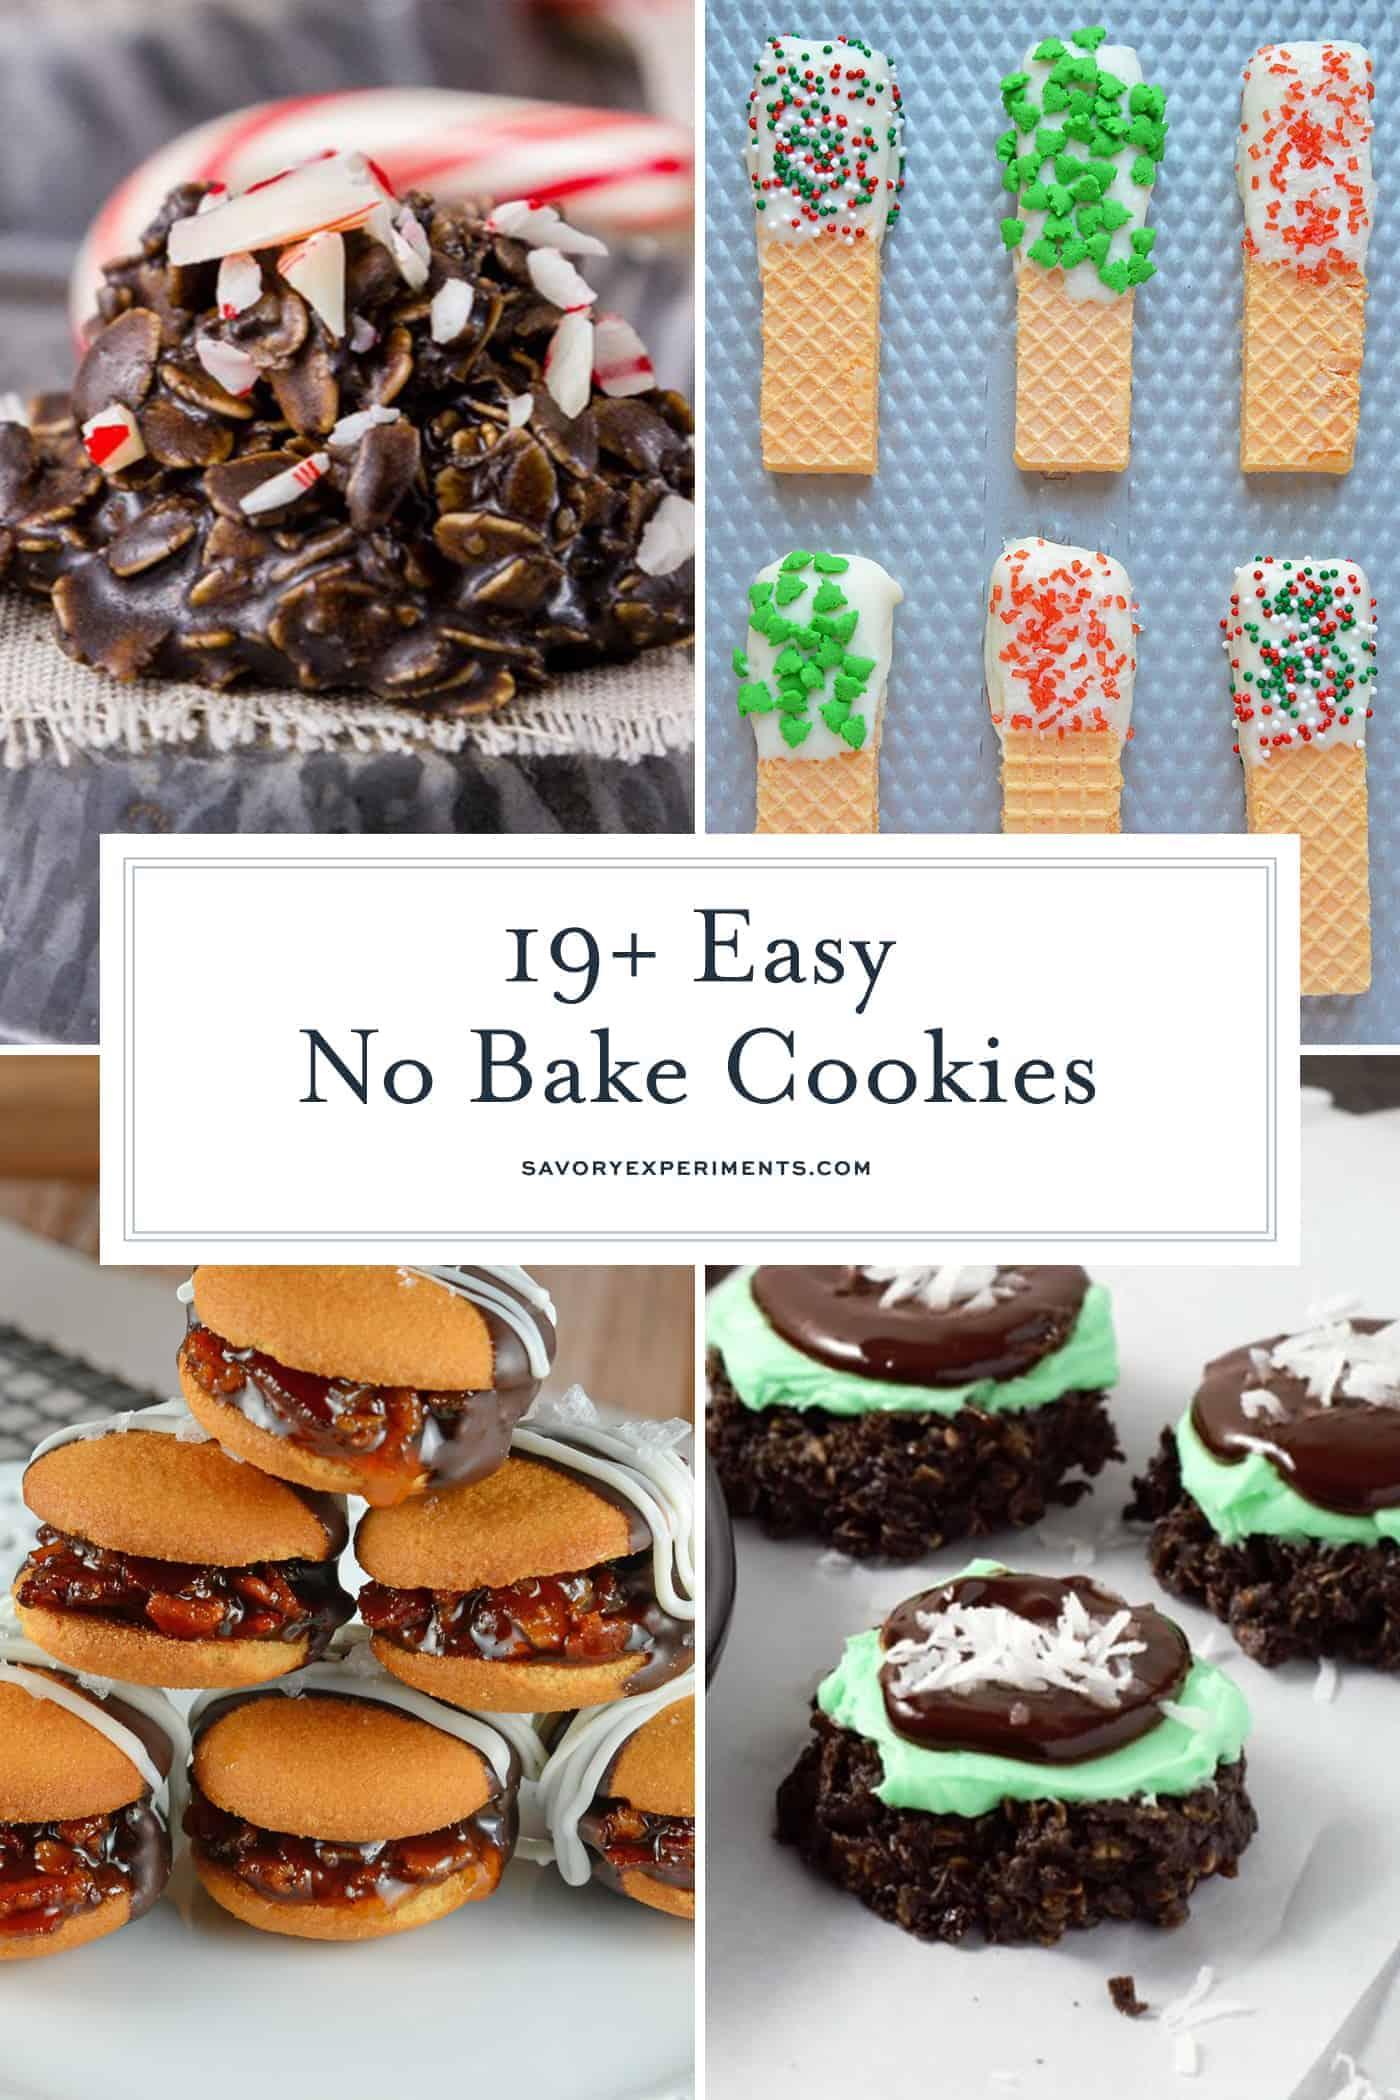 No Bake Cookie Recipes - Simple and Easy No Bake Cookies